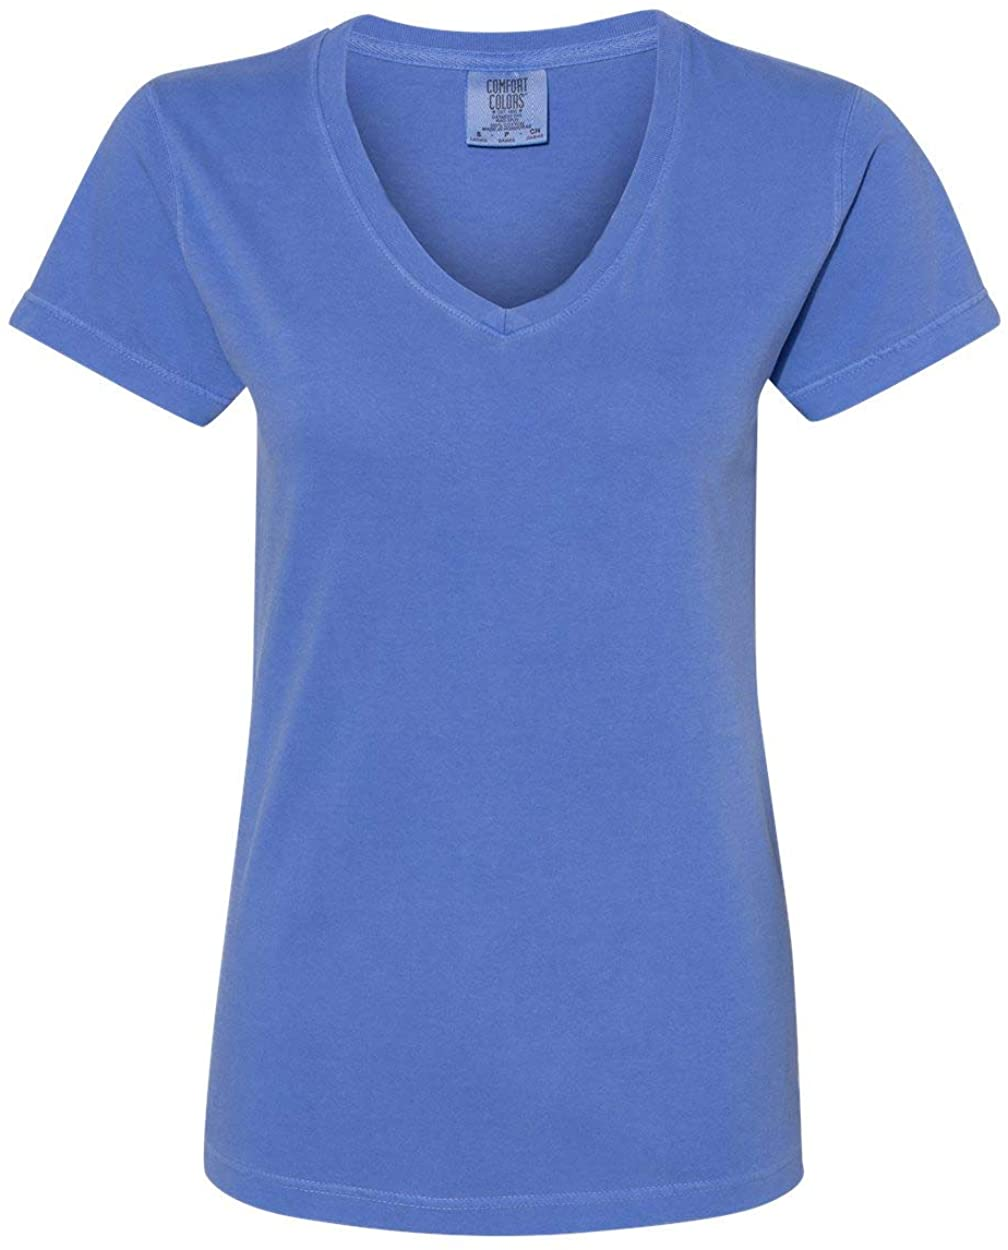 Comfort Colors Midweight RS V-Neck T-Shirt (C3199)